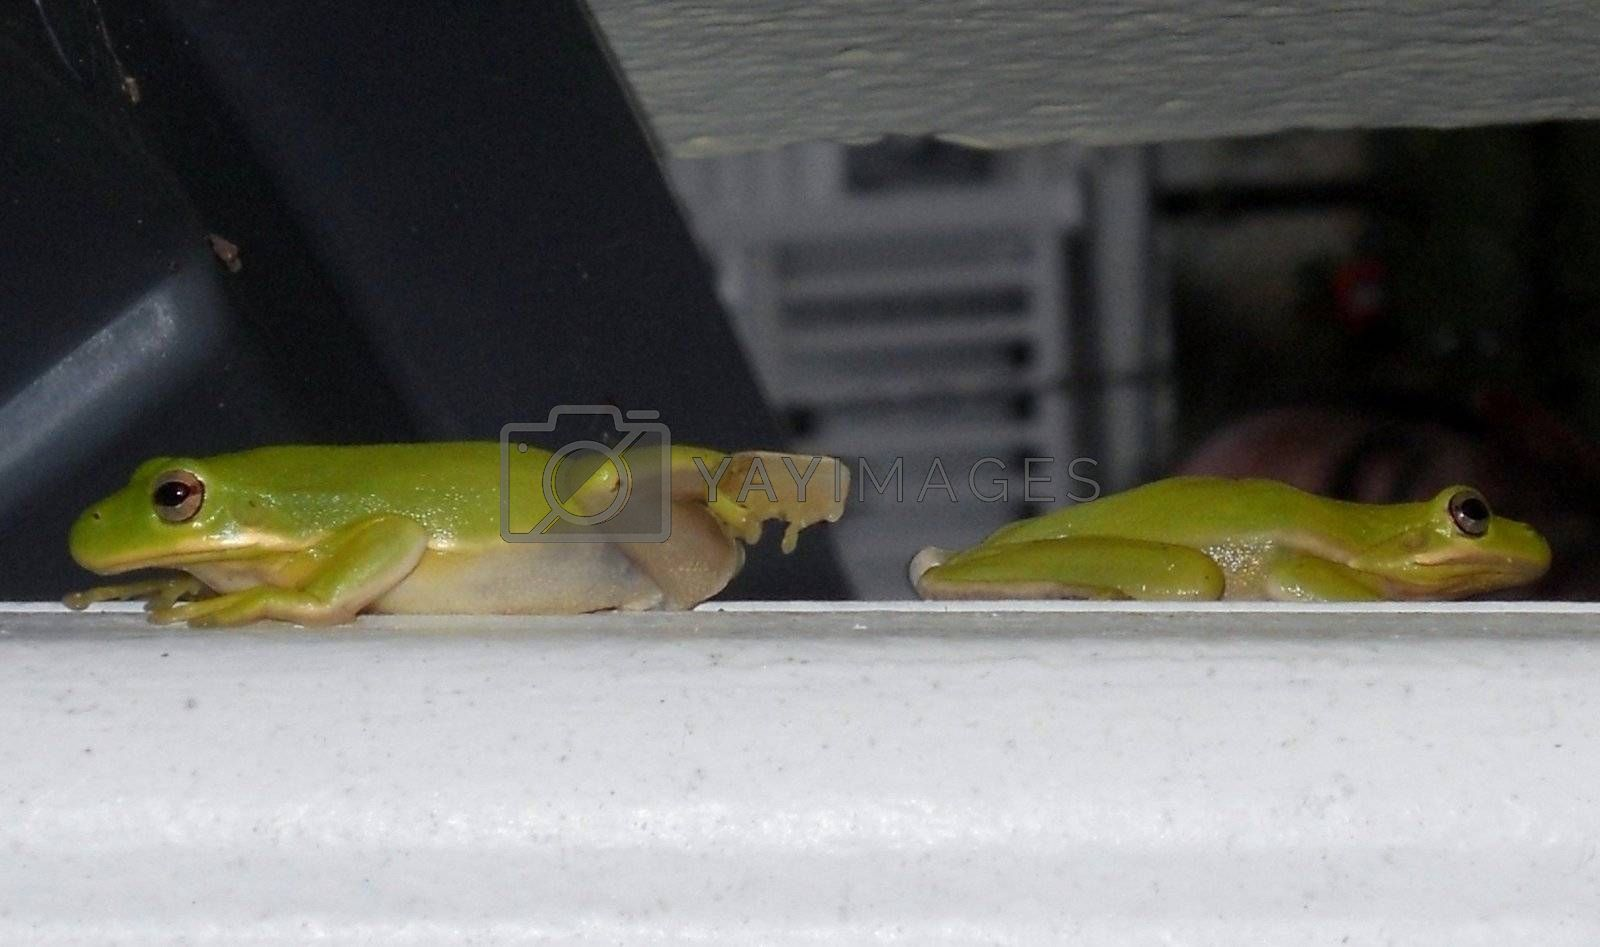 American tree frogs often come out and mate just after warm summer rains. Here, two have met up on a downspout.